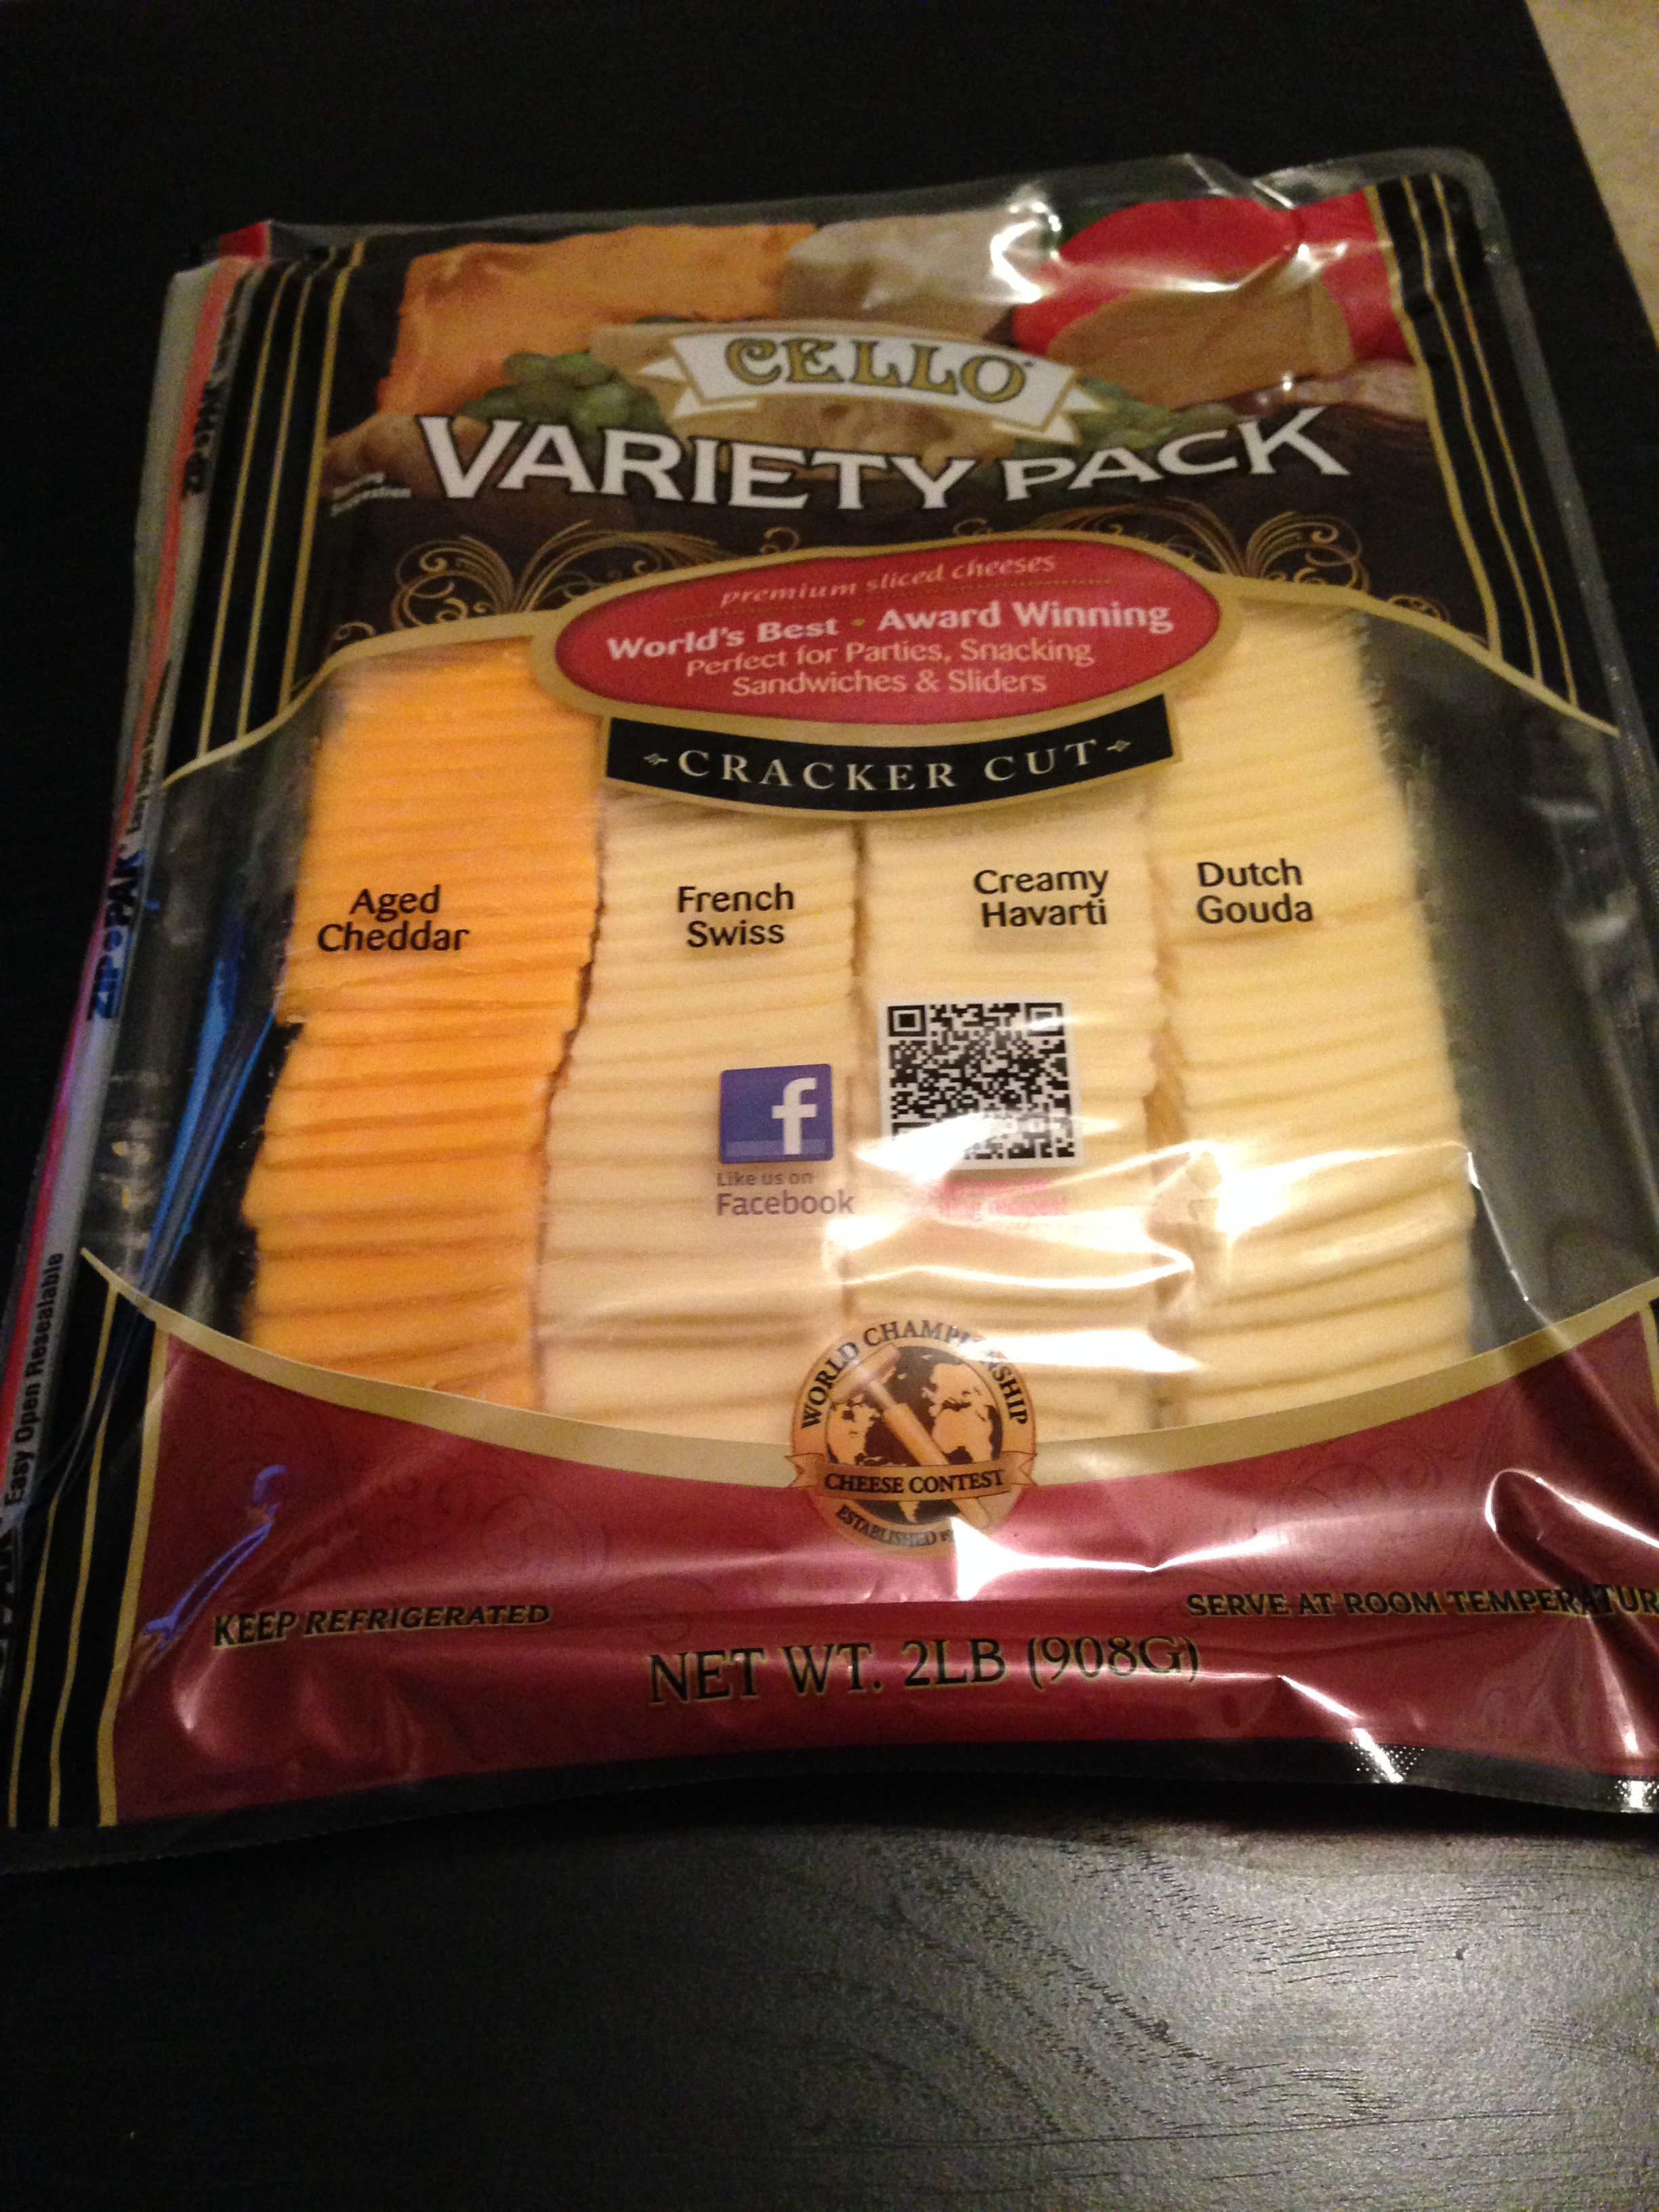 This is the cheese pack that Costco sells.